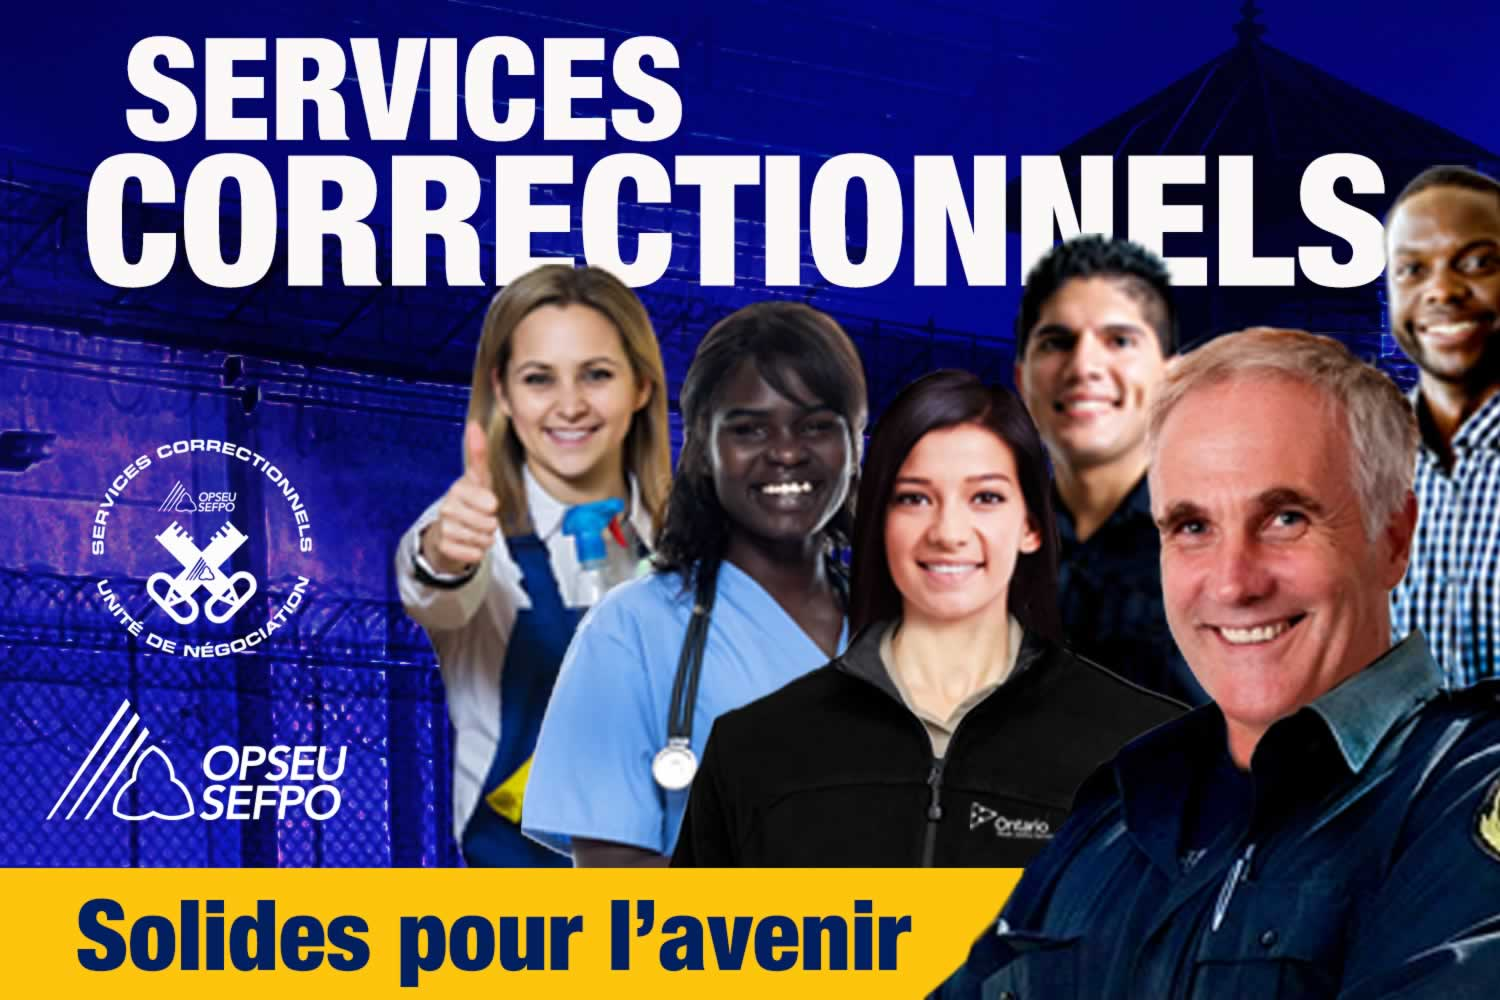 Cinq agents correctionnels de la prison du district de Thunder Bay ont contracté la COVID-19